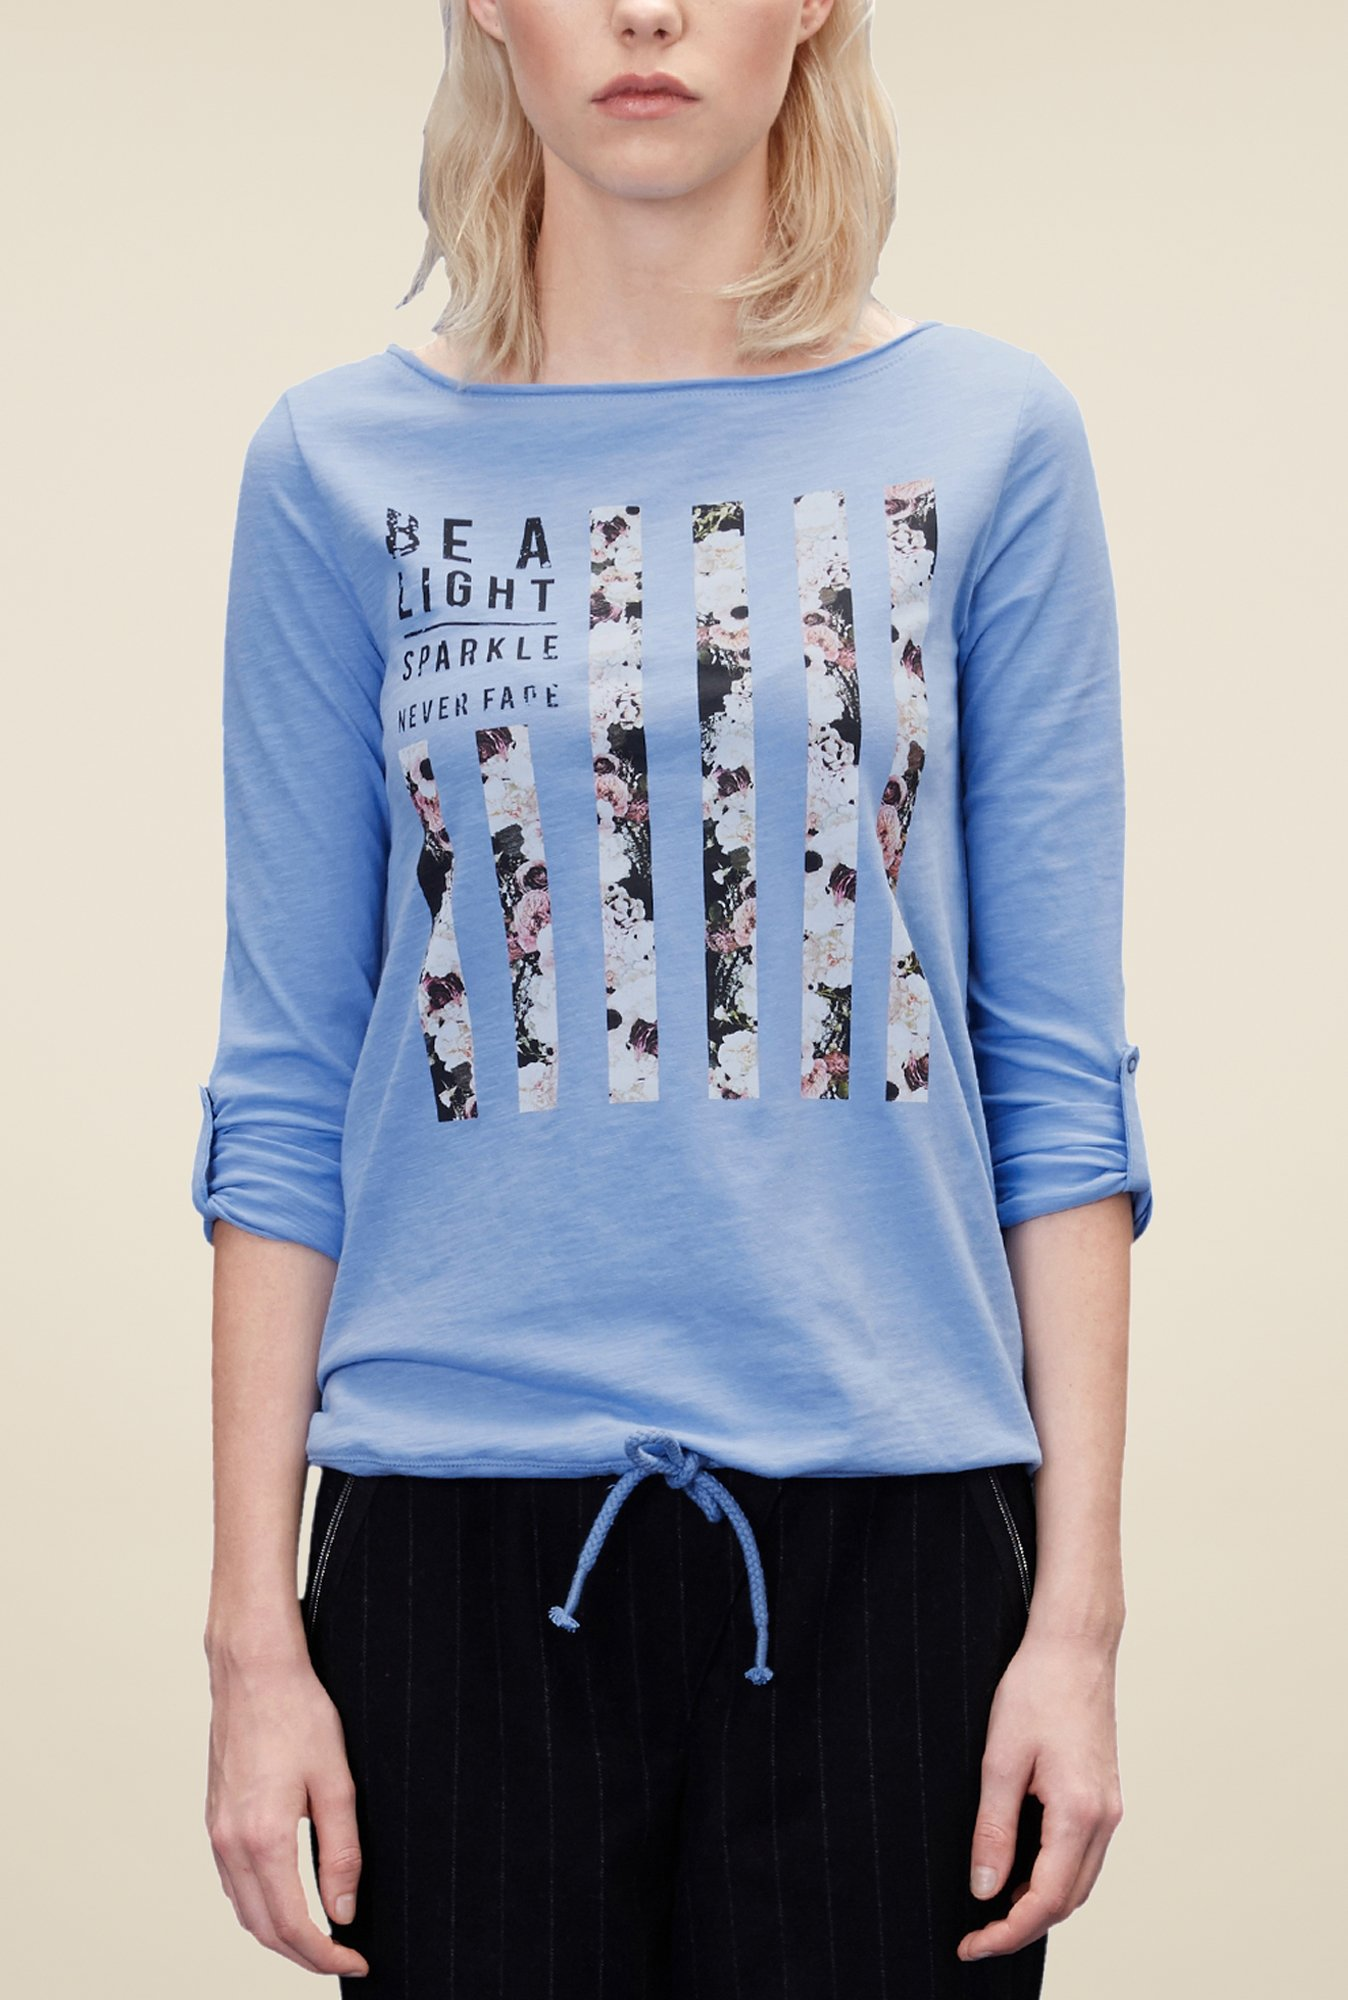 s.Oliver Sky Blue Graphic Print T Shirt